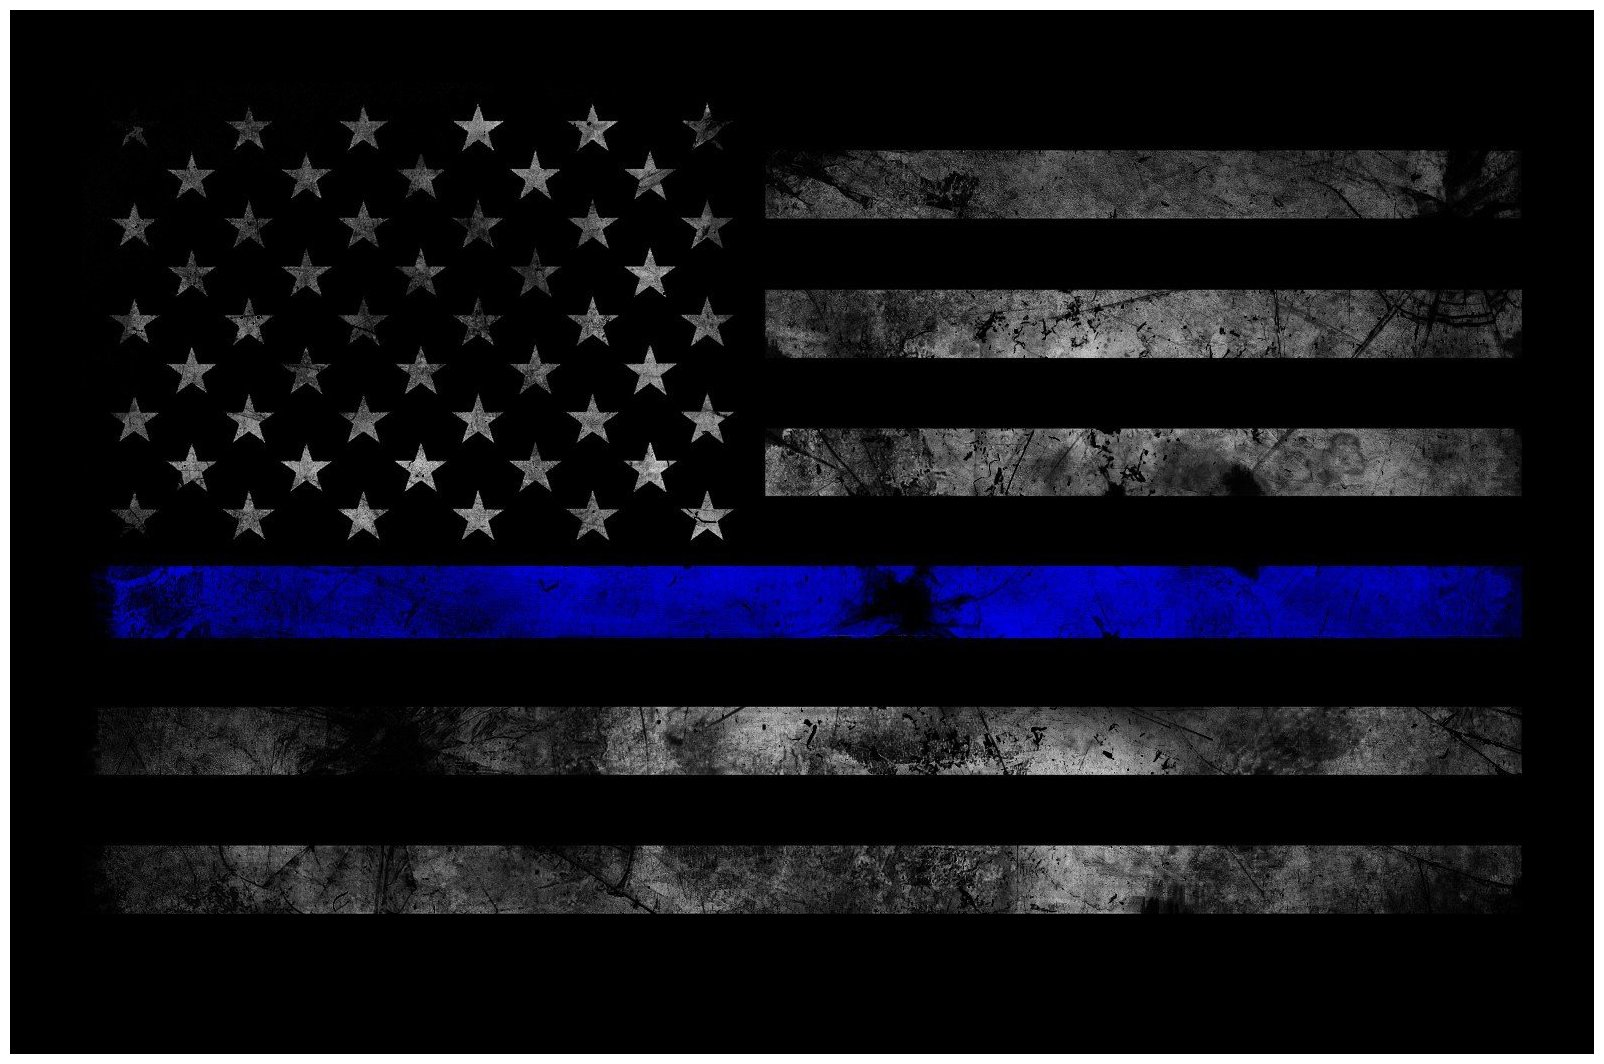 Thin Blue Line Quotes Wiring Diagrams Diagram Http Forumih8mudcom 80seriestech 514224nodiagrams The Killing Fields Of America Who Is Responsible Family Namby Pamby